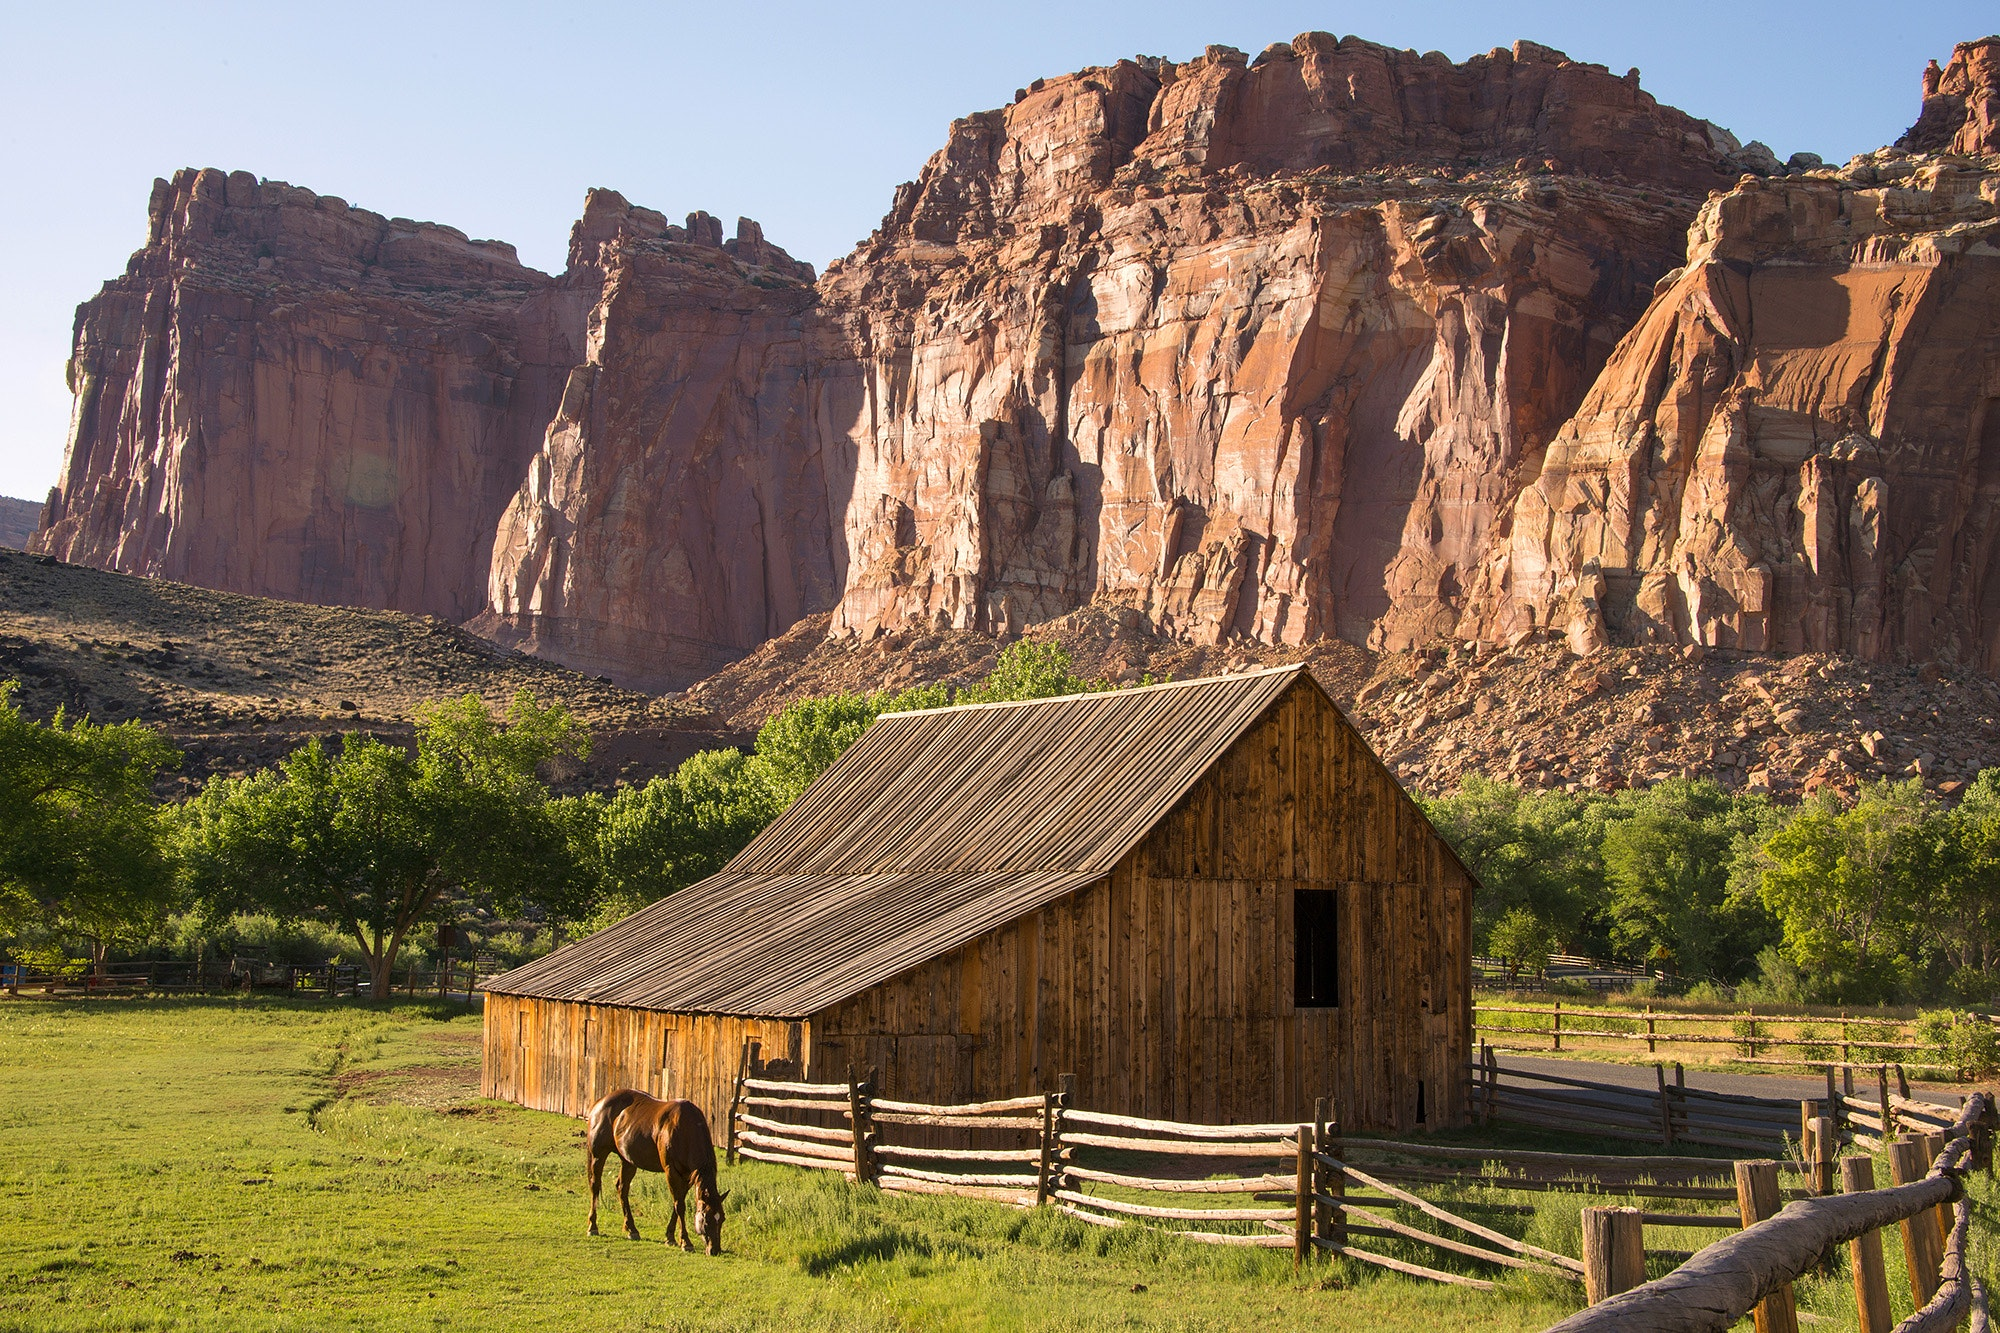 Near the Gifford Homestead, the rocks of Capitol Reef become fecund farmland.